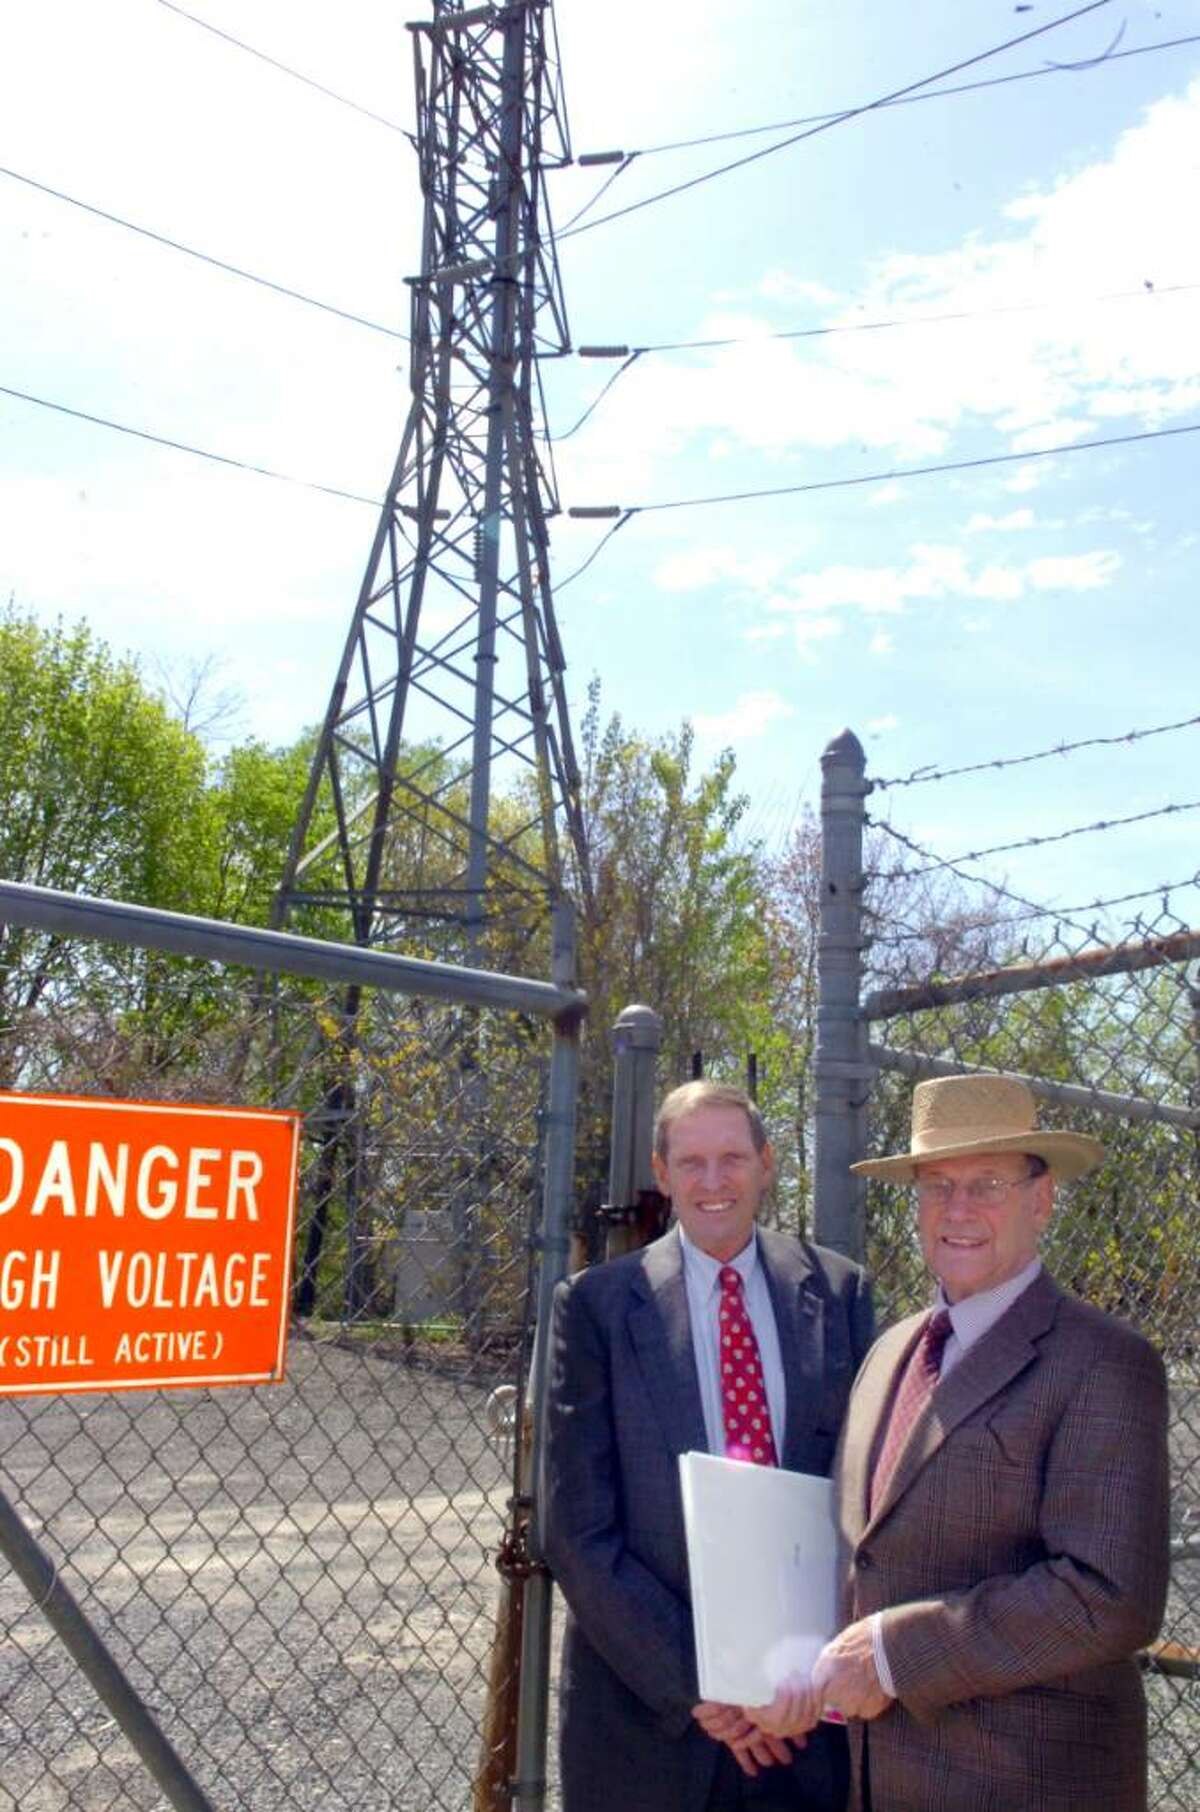 Attorney Dean Montgomery, left, and his brother Barry stand near one of three cell phone towers at the site of the former Cos Cob power plant on Thursday, April 15, 2010. Barry Montgomery has launched a lawsuit against the town on its plans to proceed to put a park on the site.